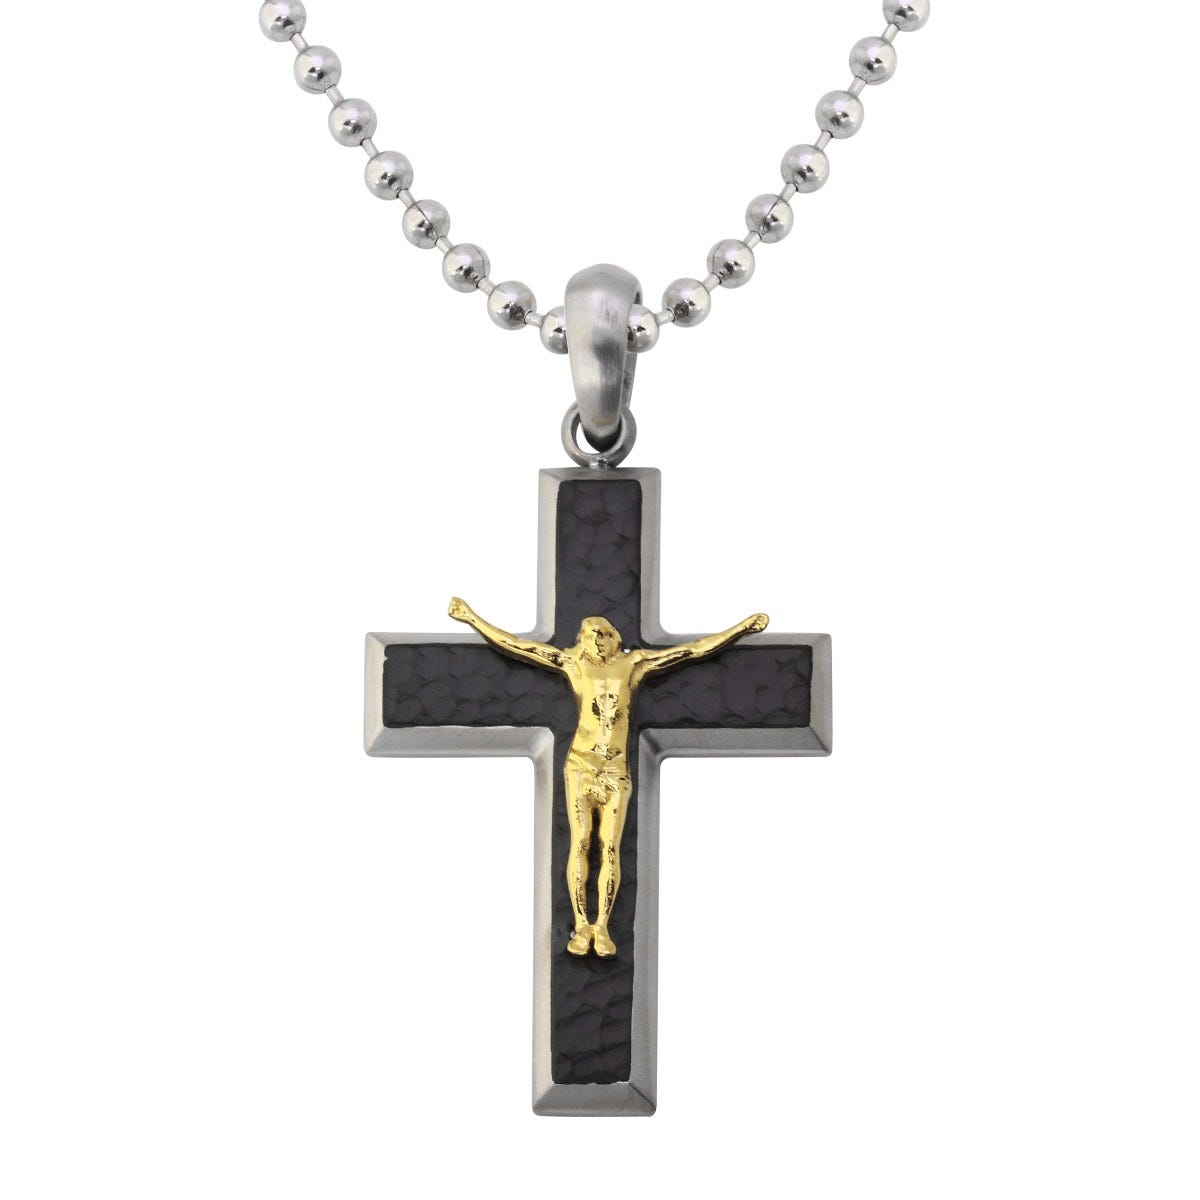 Men's Crucifix Pendant & Bead Chain Necklace in Stainless Steel